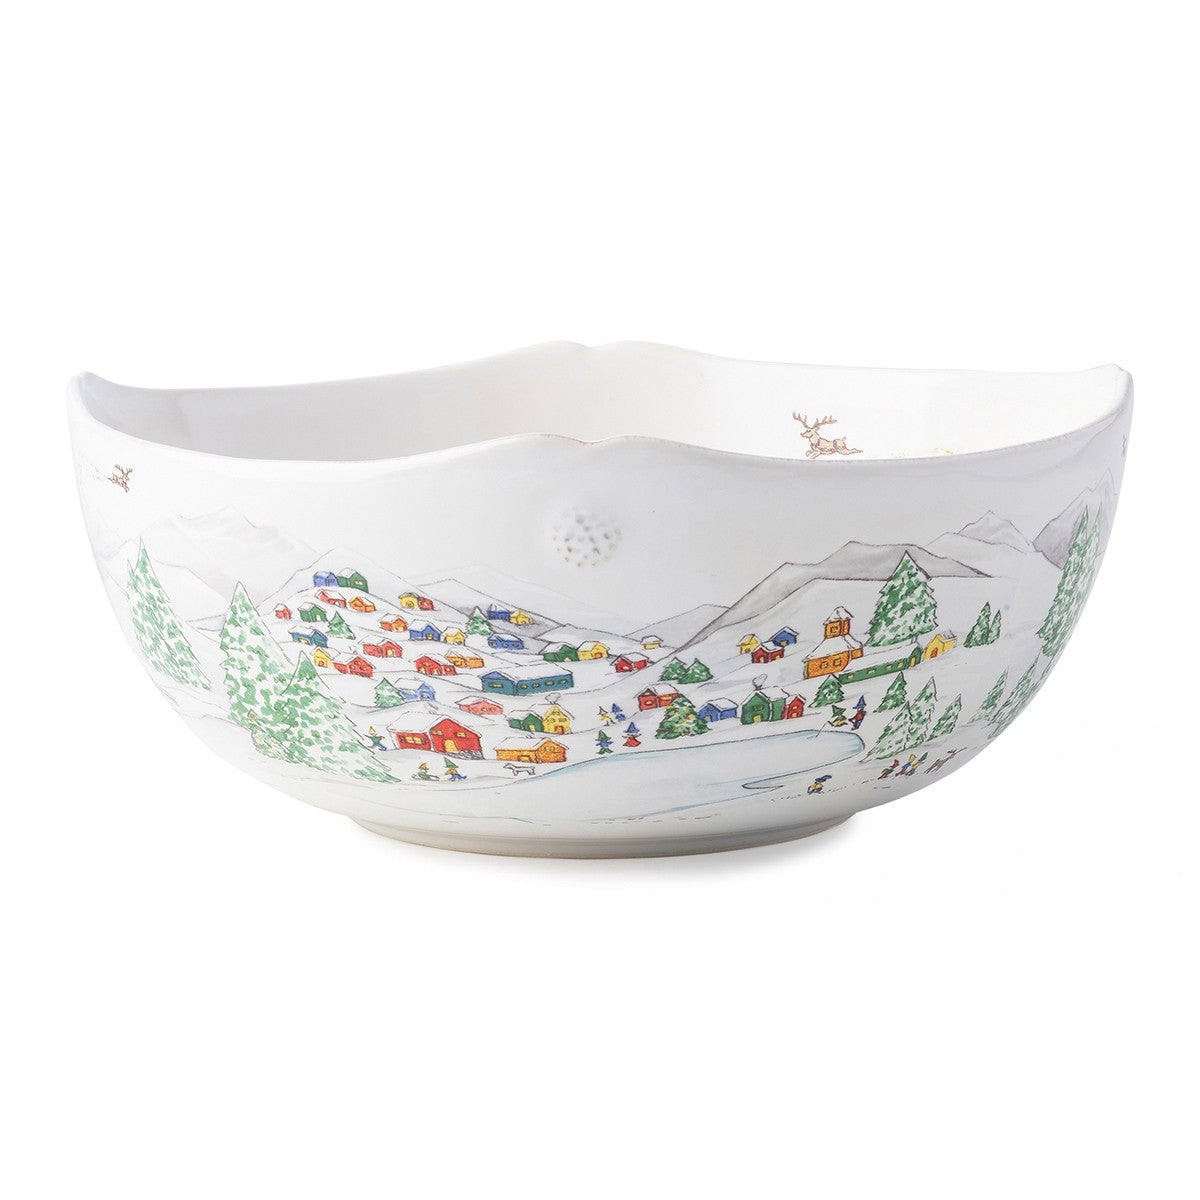 Berry & Thread North Pole Serving Bowl